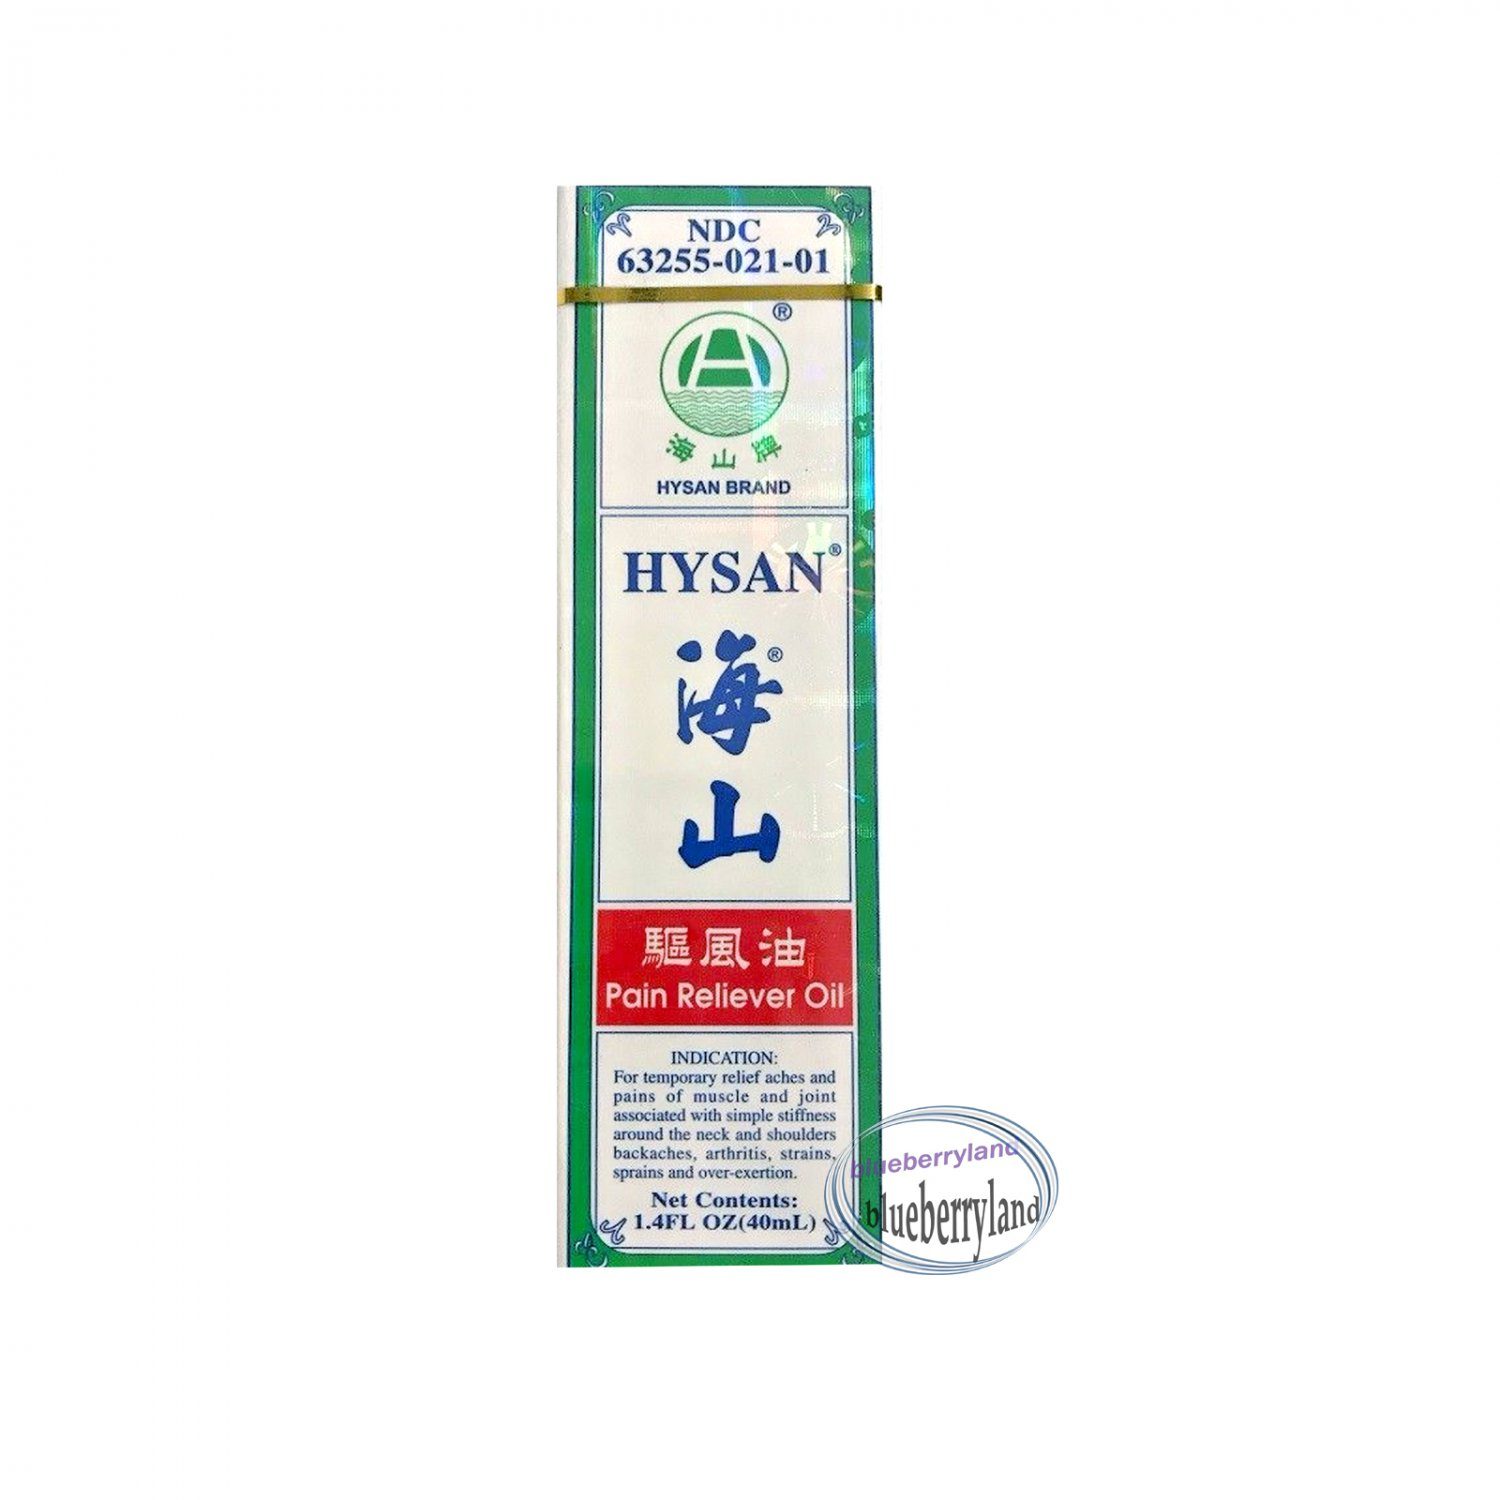 Hysan Pain Reliever Oil 40ml or 1.4 oz 海山�風油